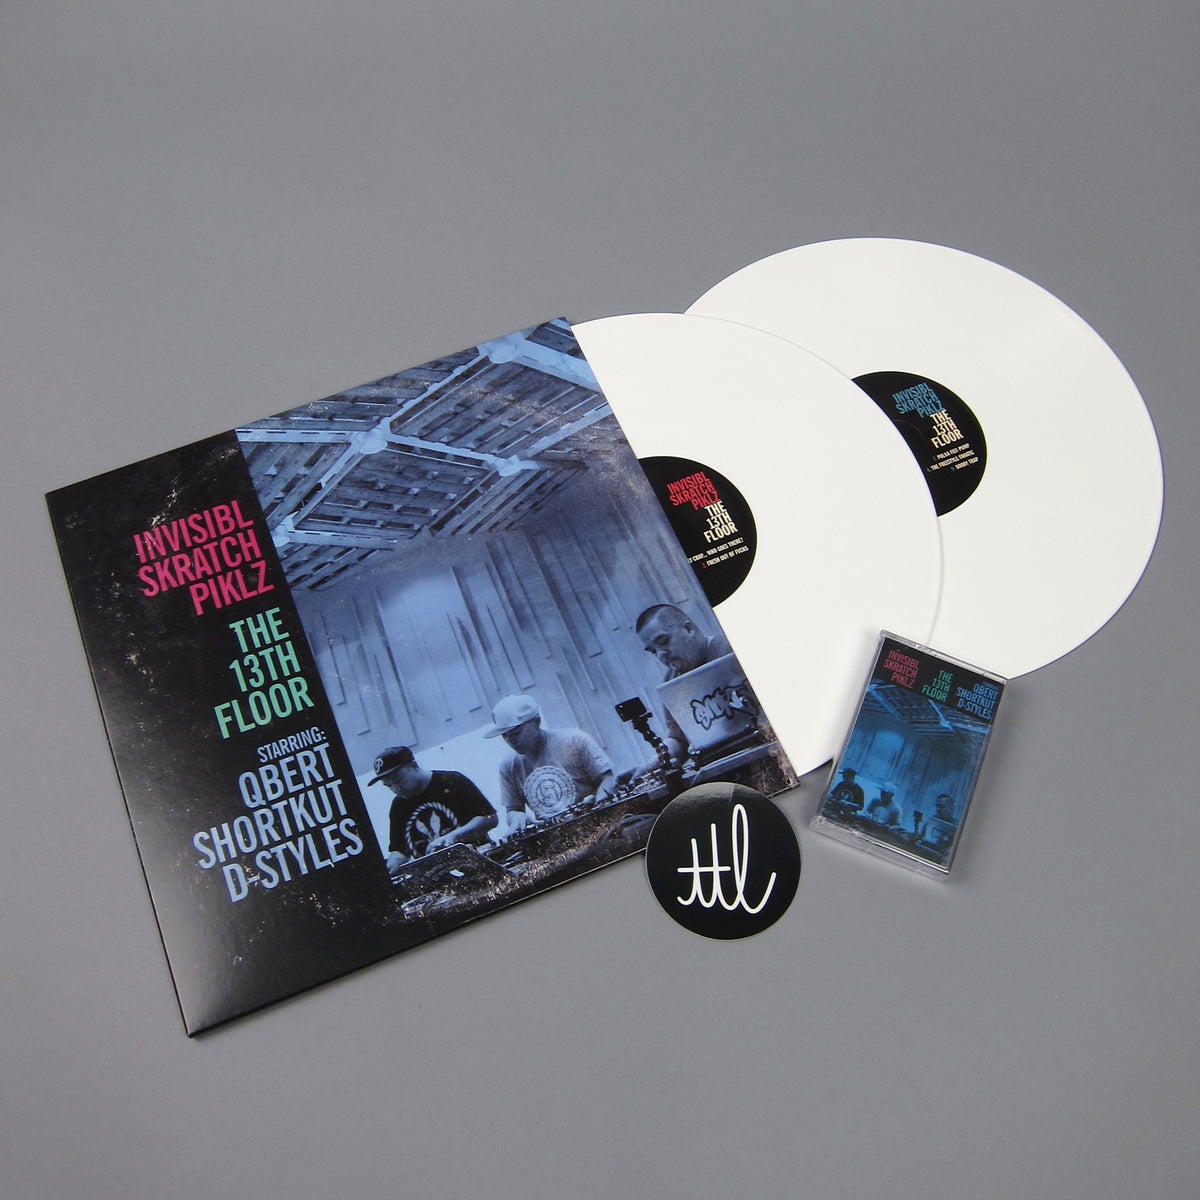 Invisibl Skratch Piklz: The 13th Floor (Colored Vinyl) Vinyl 2LP+Cassette